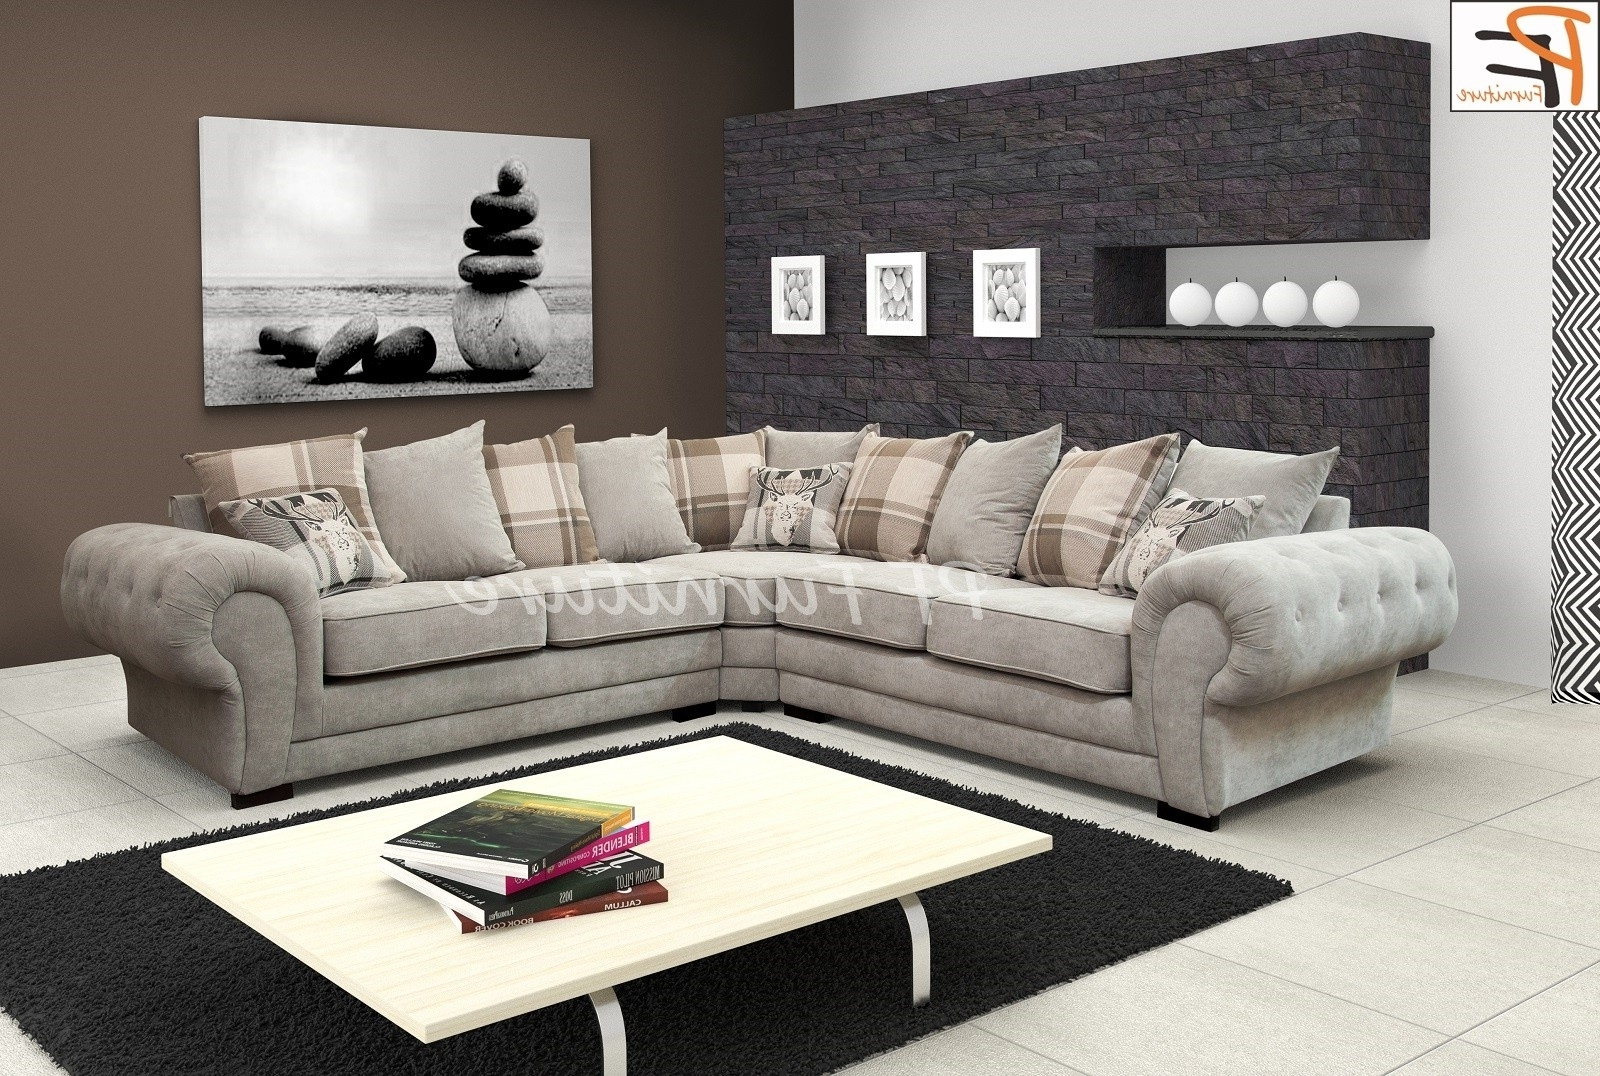 2019 How To Decorate Your Living Room With Fabric Corner Sofa Pertaining To Fabric Corner Sofas (Gallery 2 of 20)